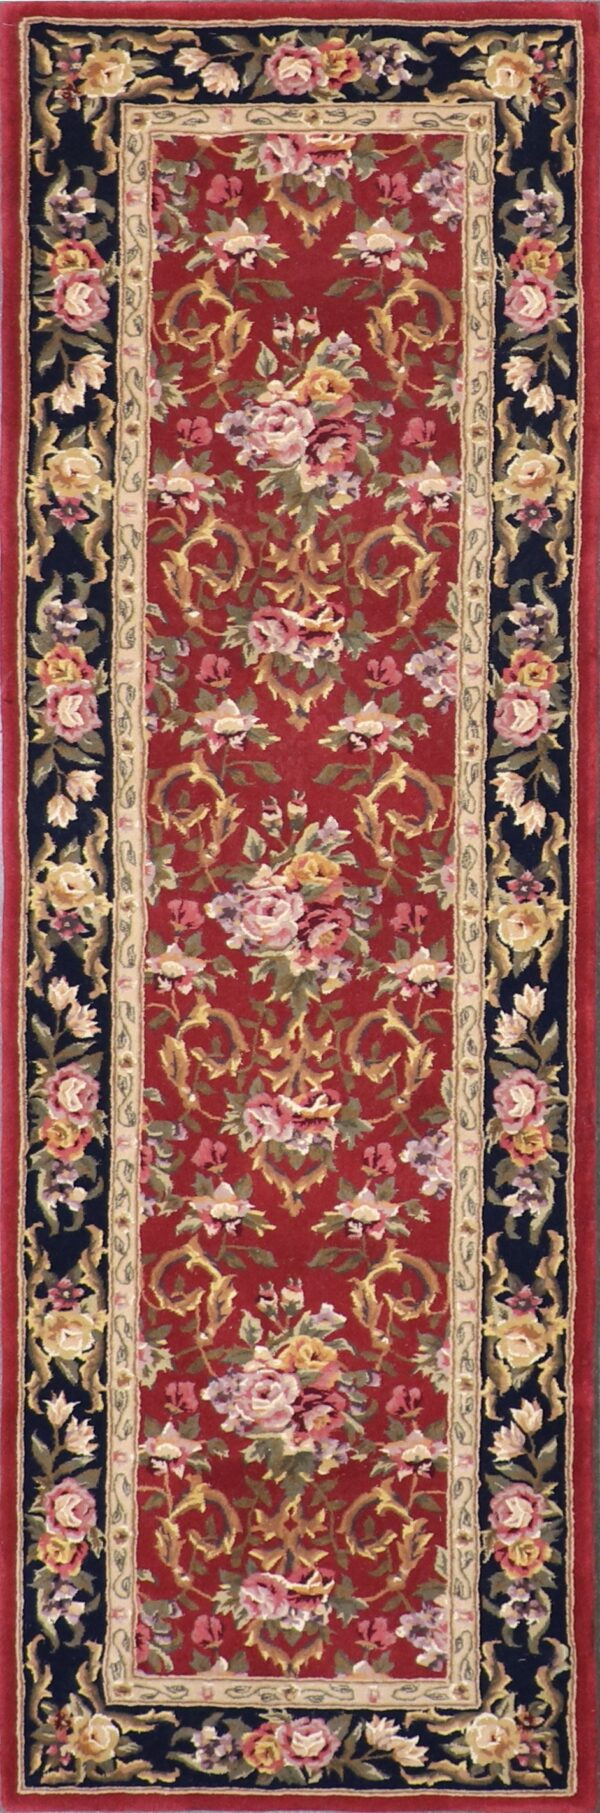 """2'6""""x8' Decorative Wool & Silk Hand-Tufted Rug - Direct Rug Import 